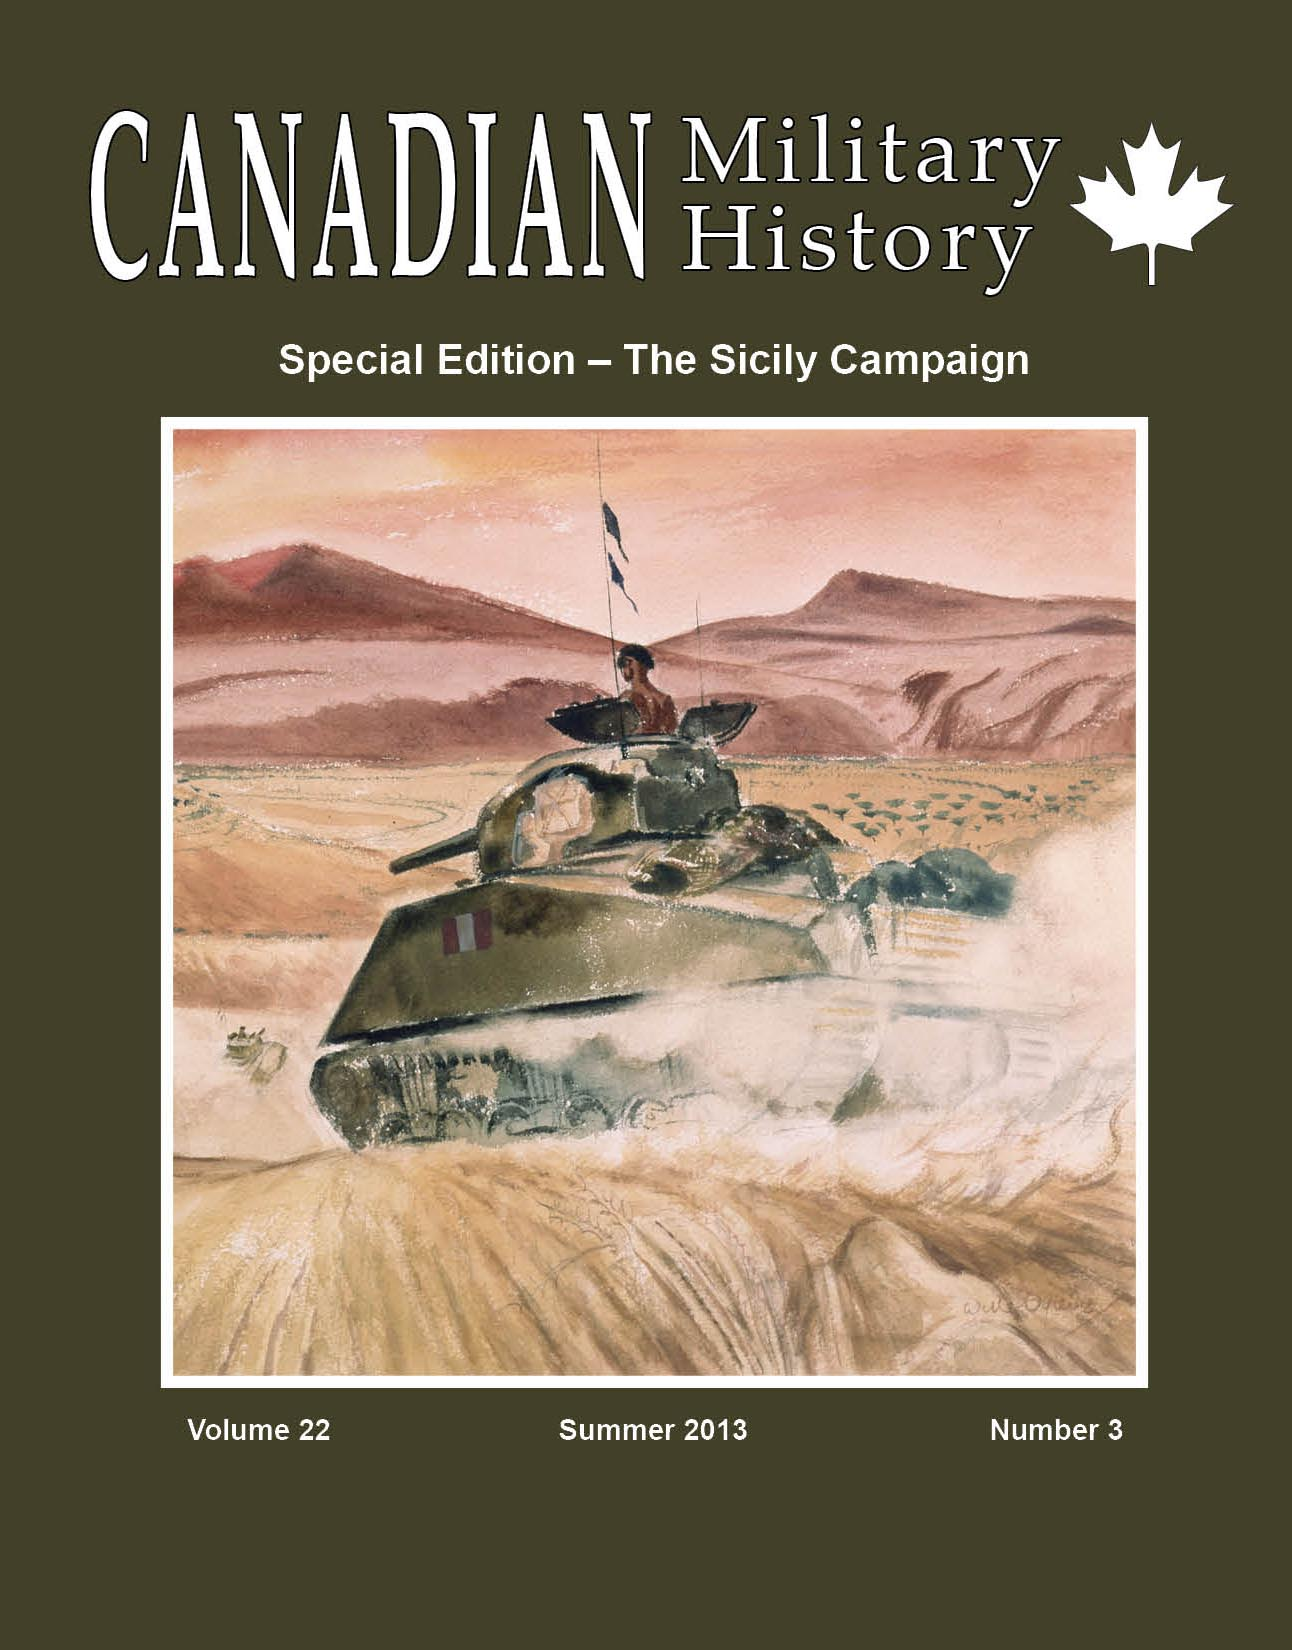 Special Edition of Canadian Military History Journal – The Sicily Campaign – Summer 2013 Vol. 22 No. 3 – (English)